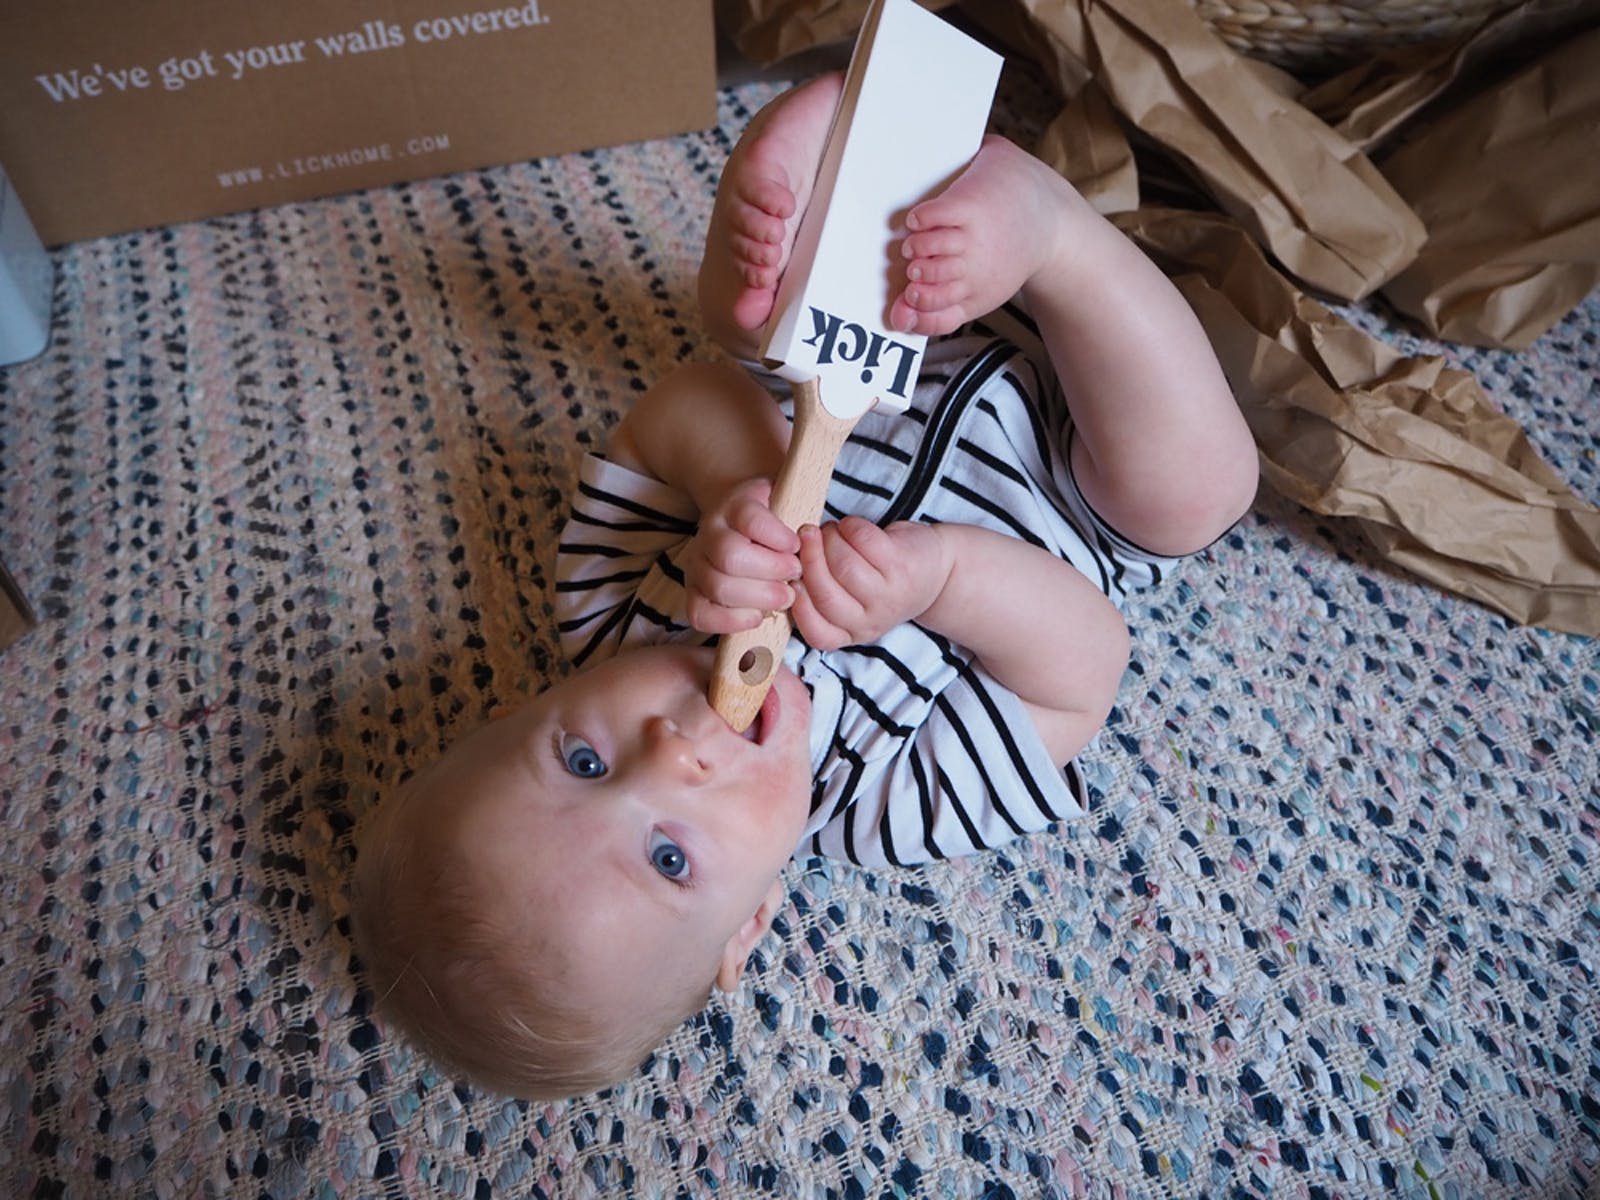 A baby chewing on an unused Lick paint brush